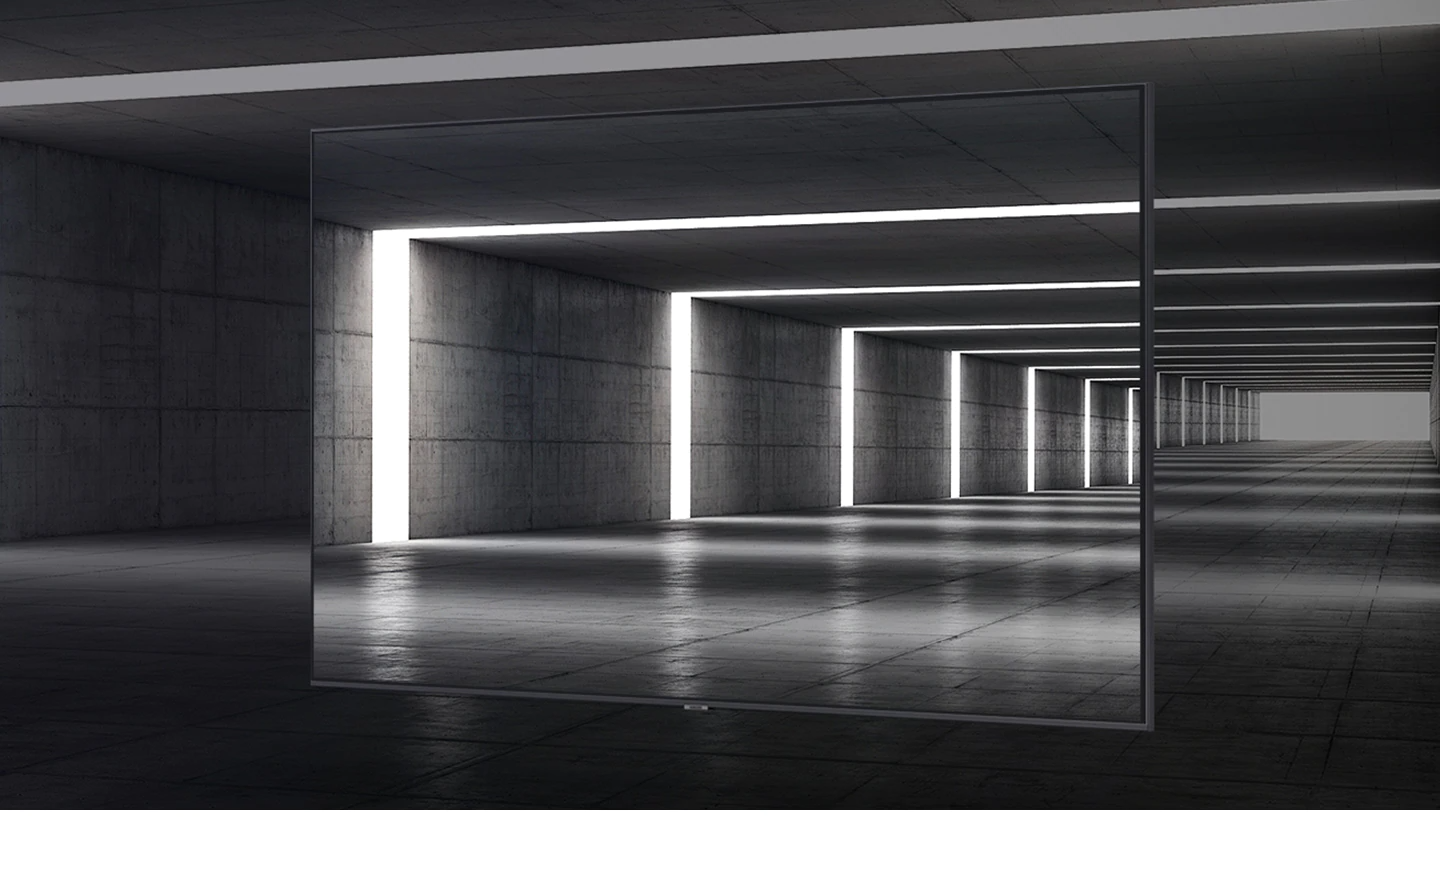 3-Bezeless Design of AU7000 can be seen on top of artistic angle of tunnel interior.